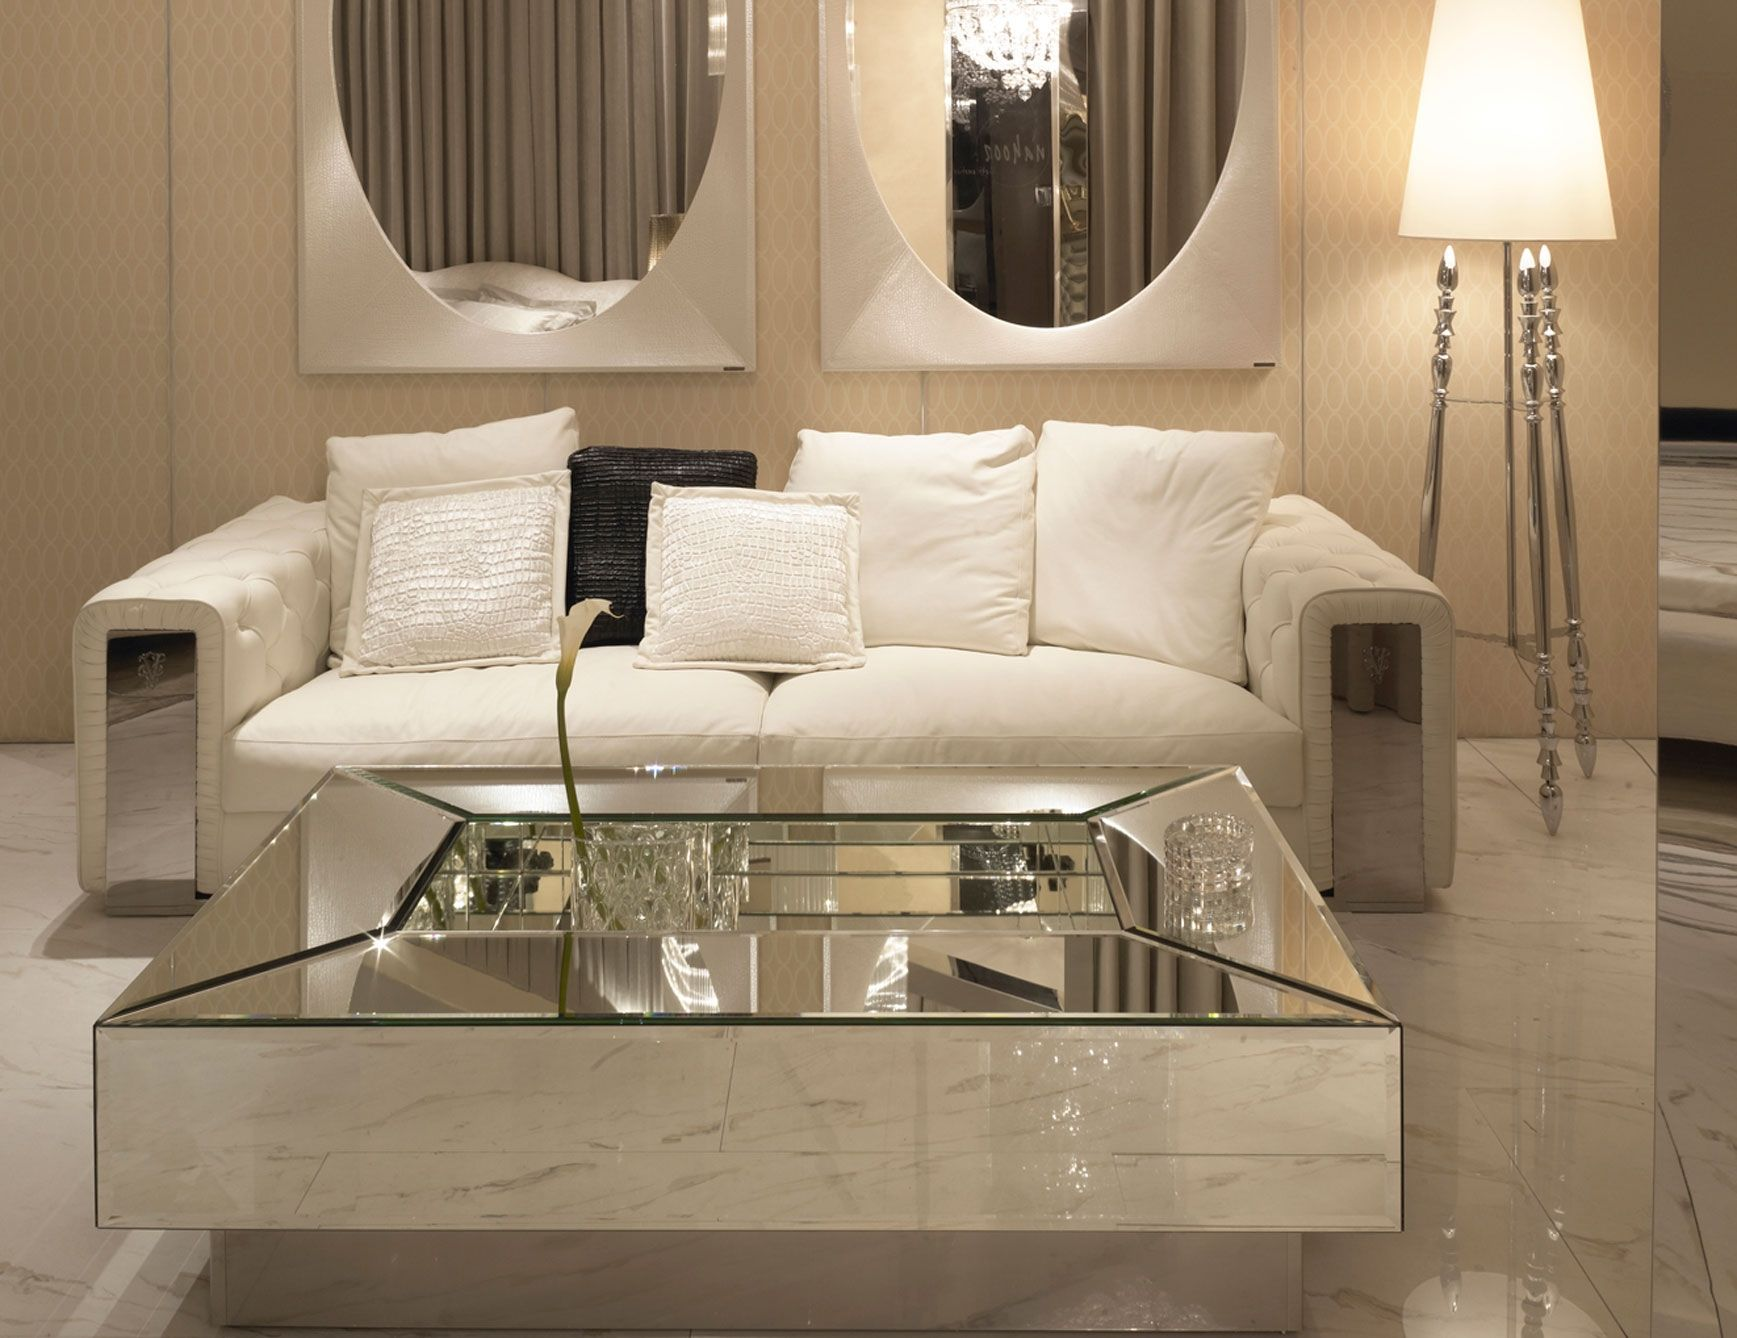 Great Mesmerizing Mirrored Coffee Table With Glass And Wood Combined: Furniture  Modern Minimalist Living Room Design